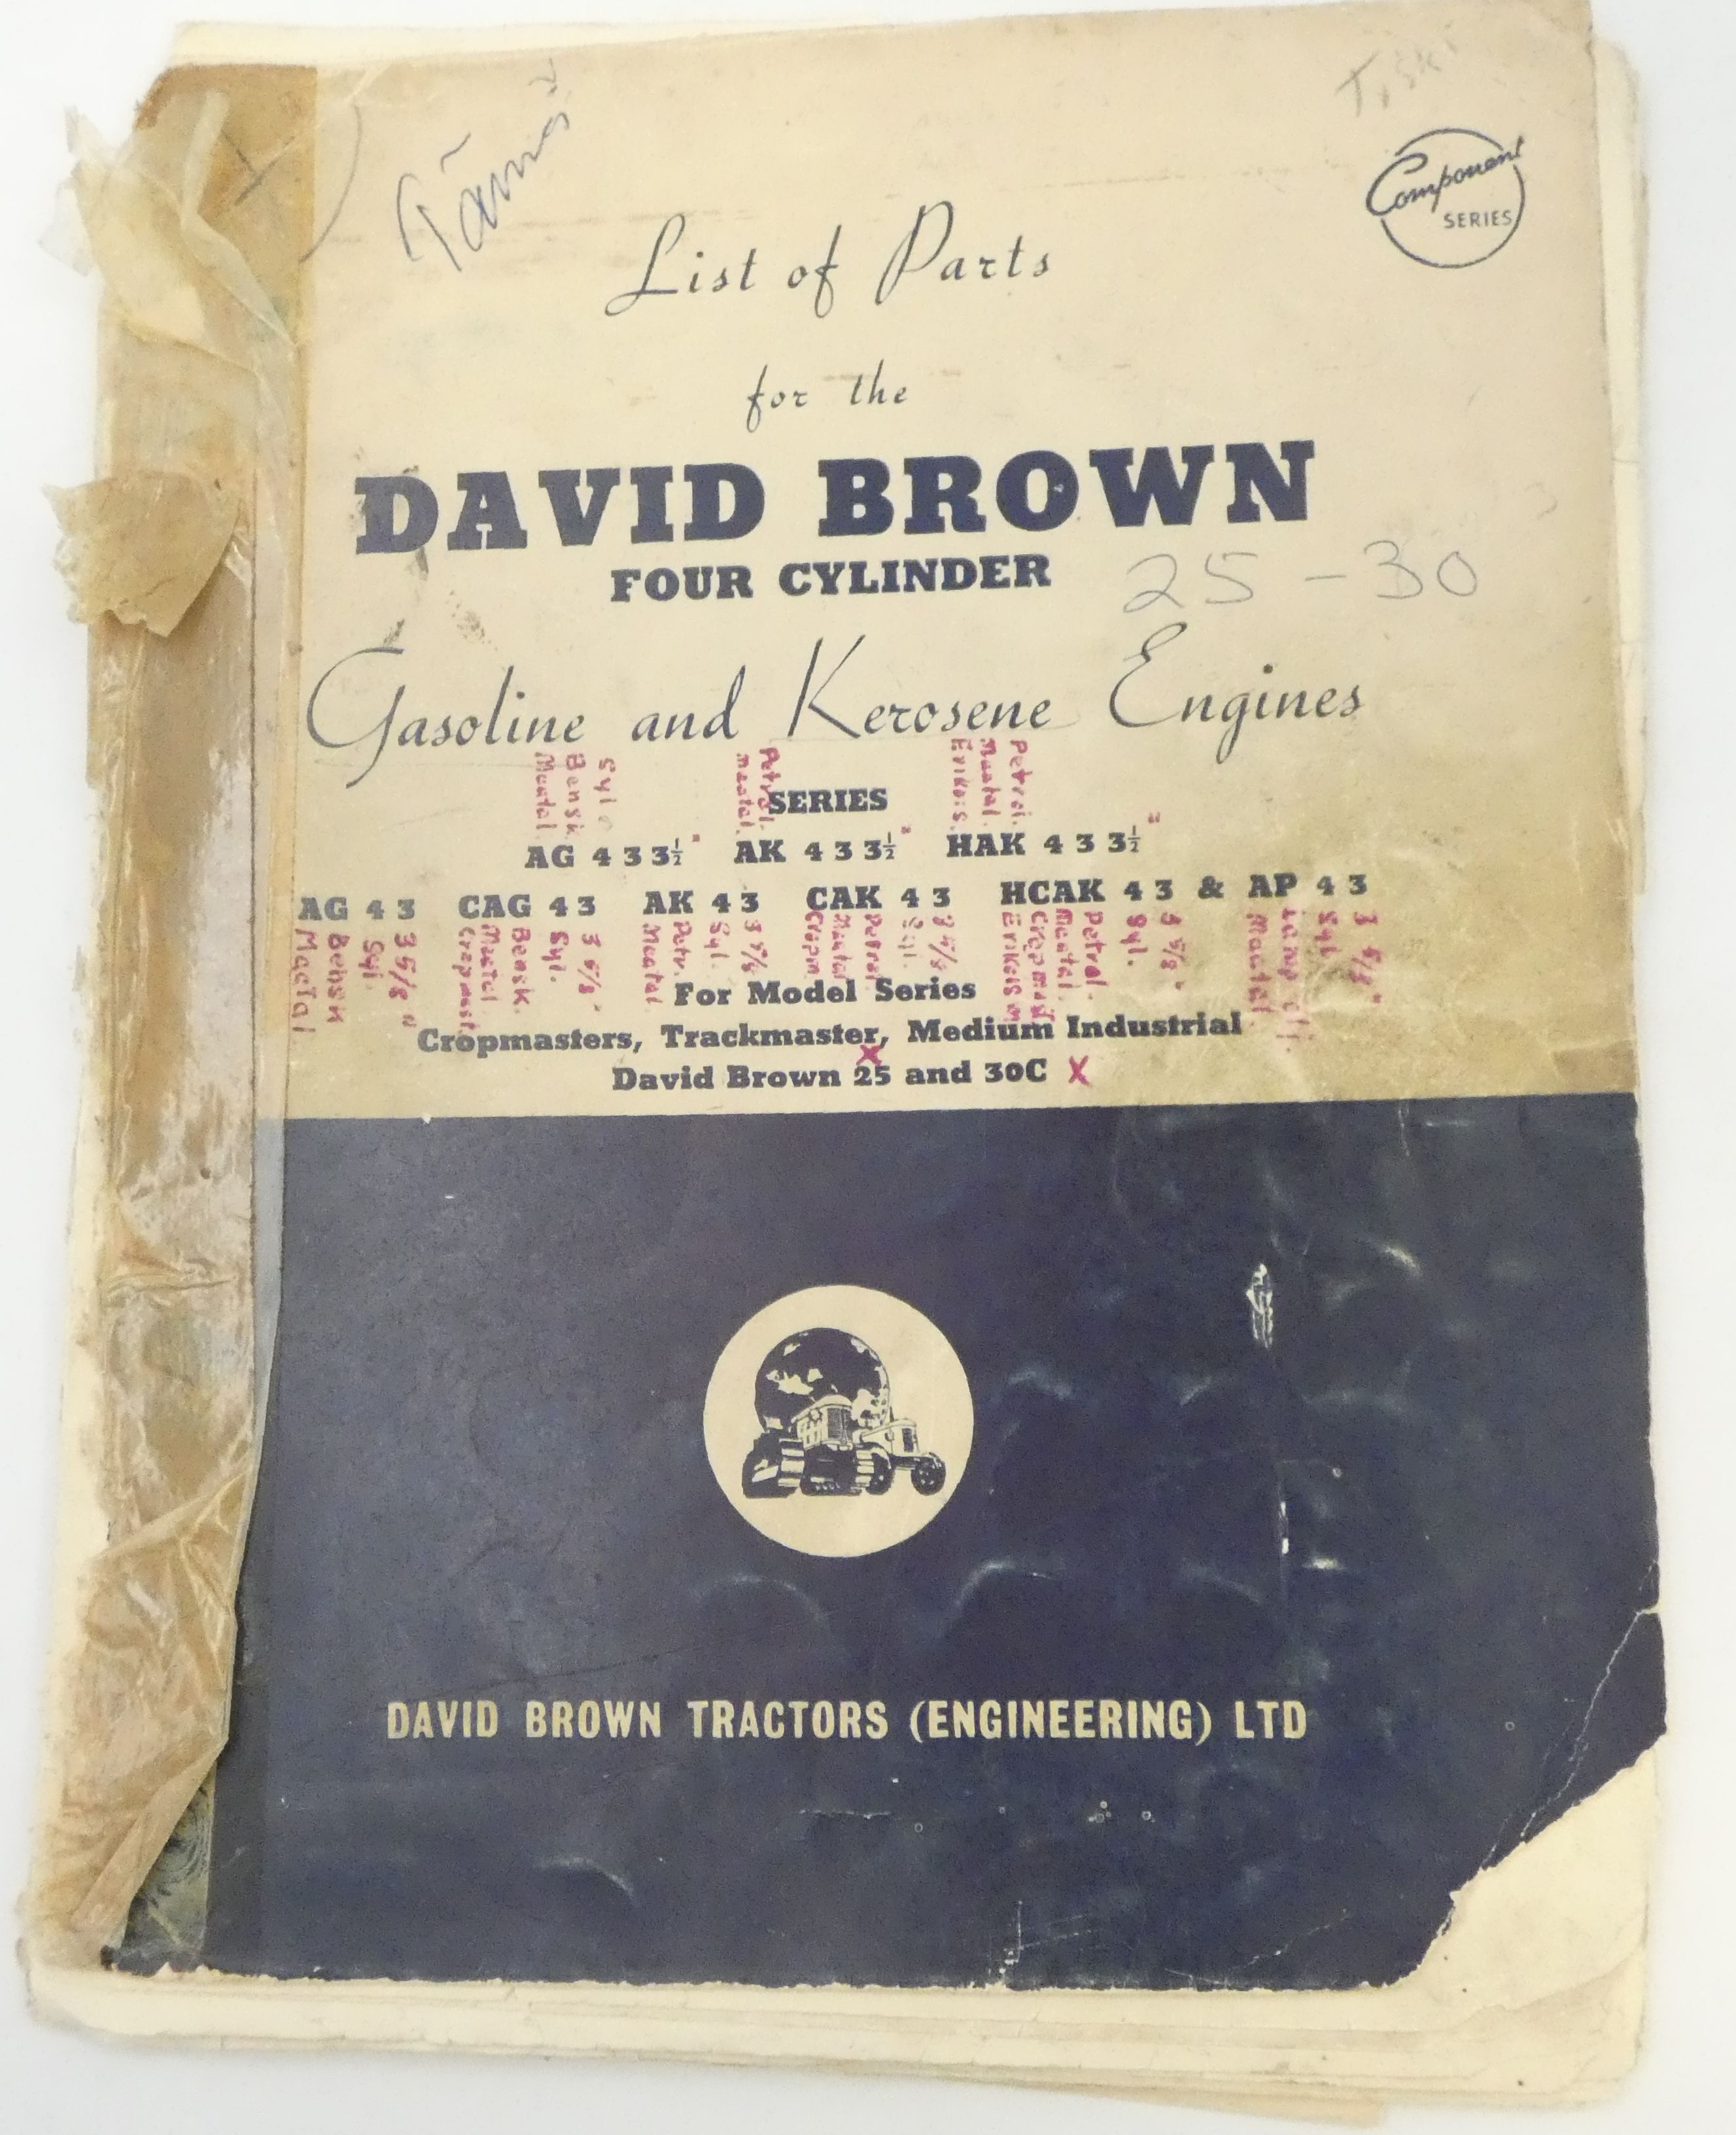 David Brown list of parts for the four cylinder gasoline and kerosine engines